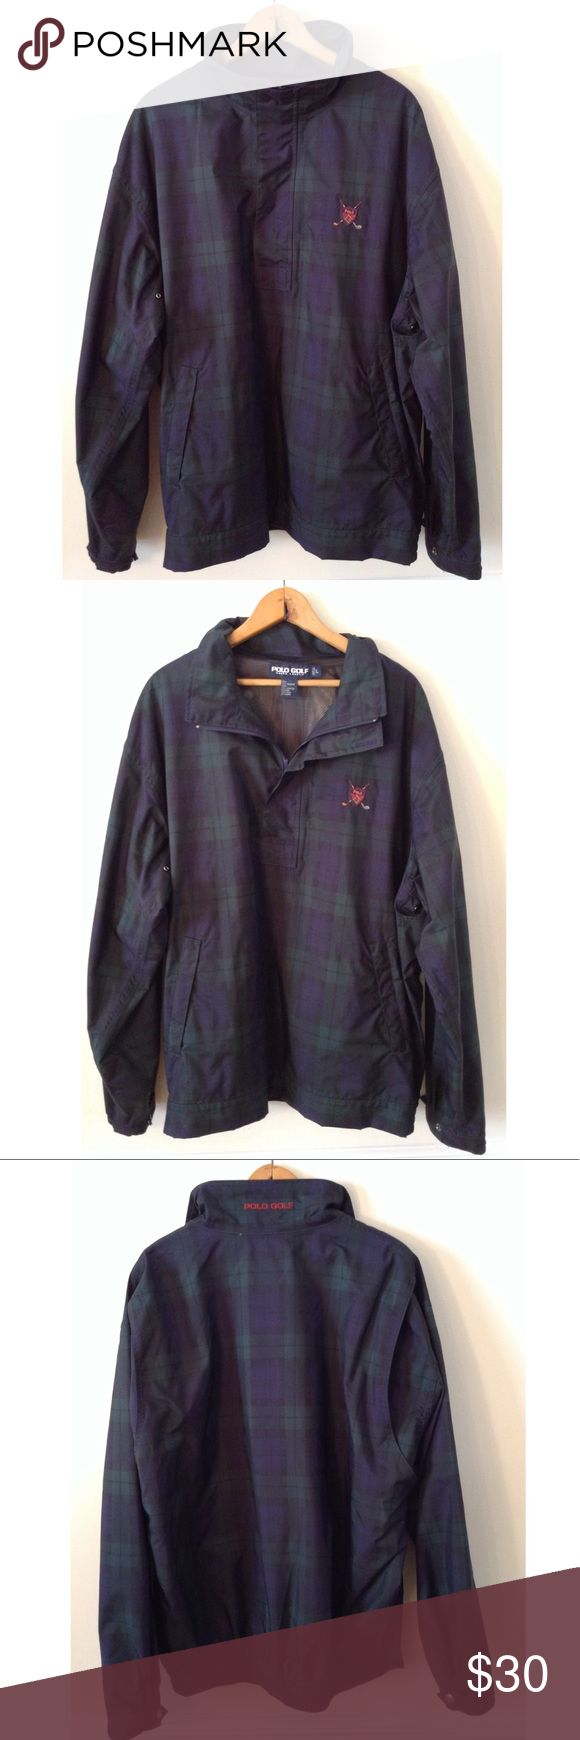 🔥🔥Polo Ralph Lauren Golf Jacket🔥🔥 Selling a vintage Polo Ralph Lauren pullover golf jacket. This jacket is in great condition. Polo by Ralph Lauren Jackets & Coats Lightweight & Shirt Jackets